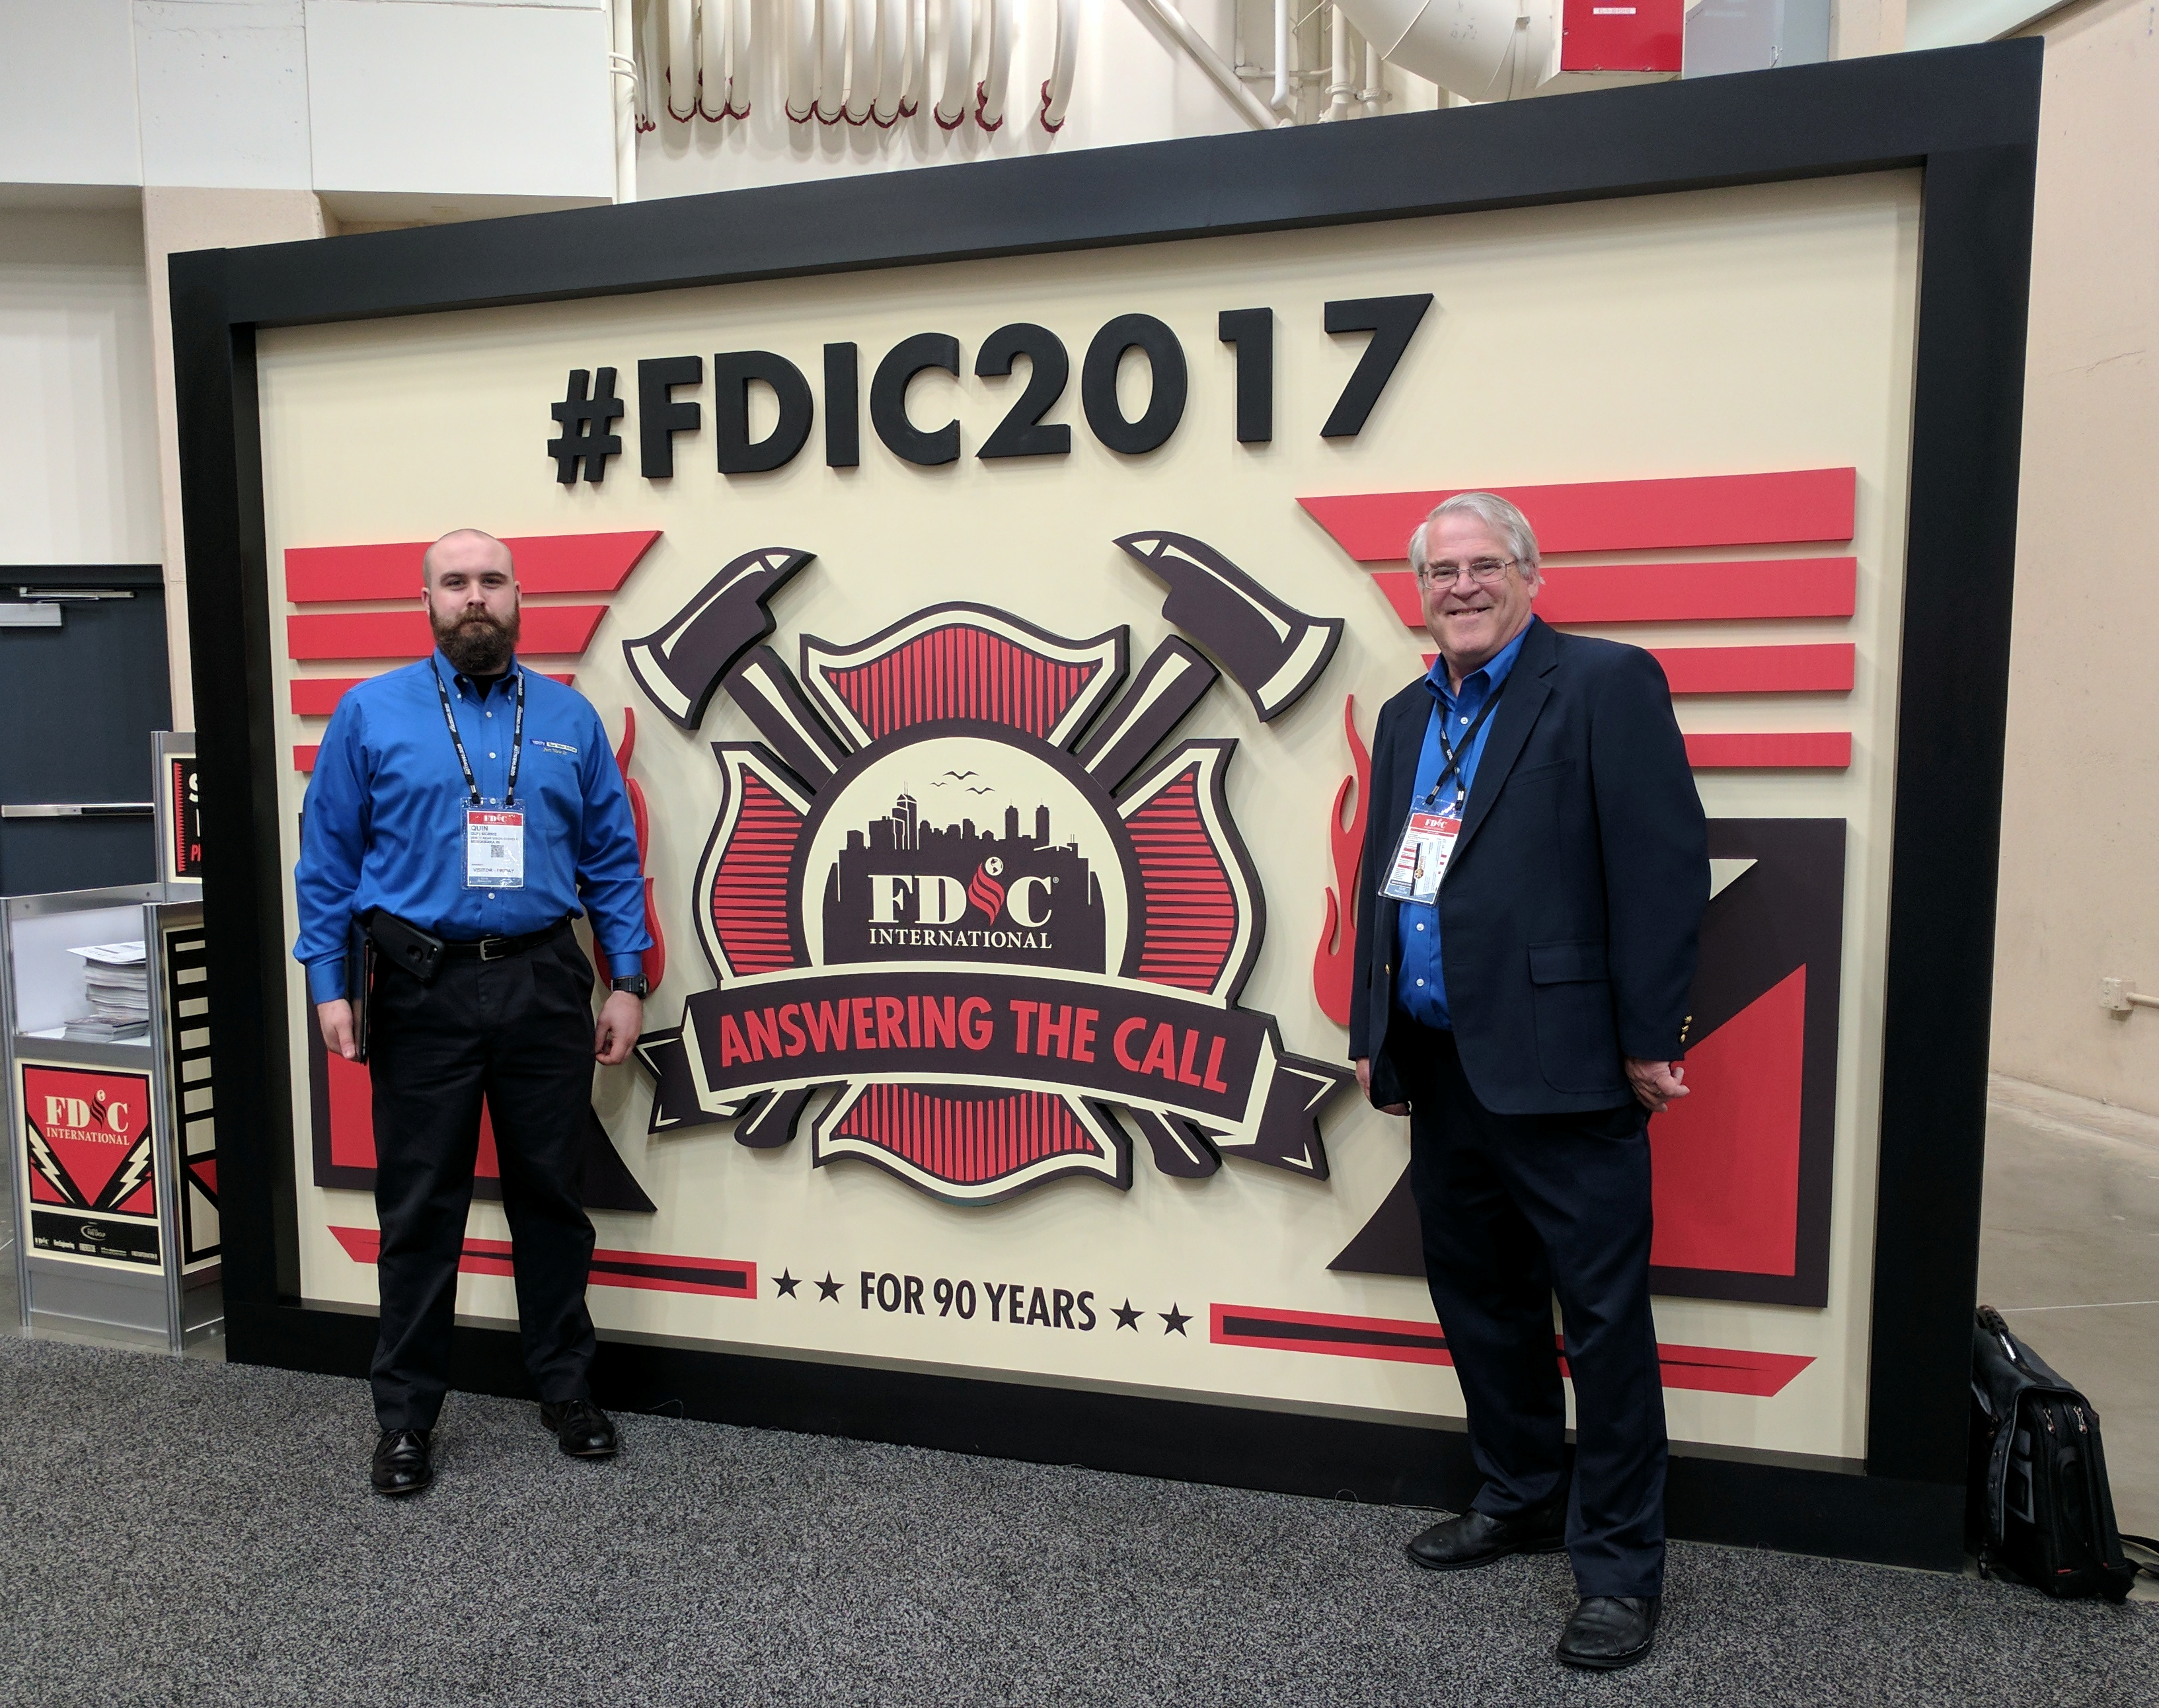 Quin and Bill FDIC 2017 Verity Rear Vision Systems